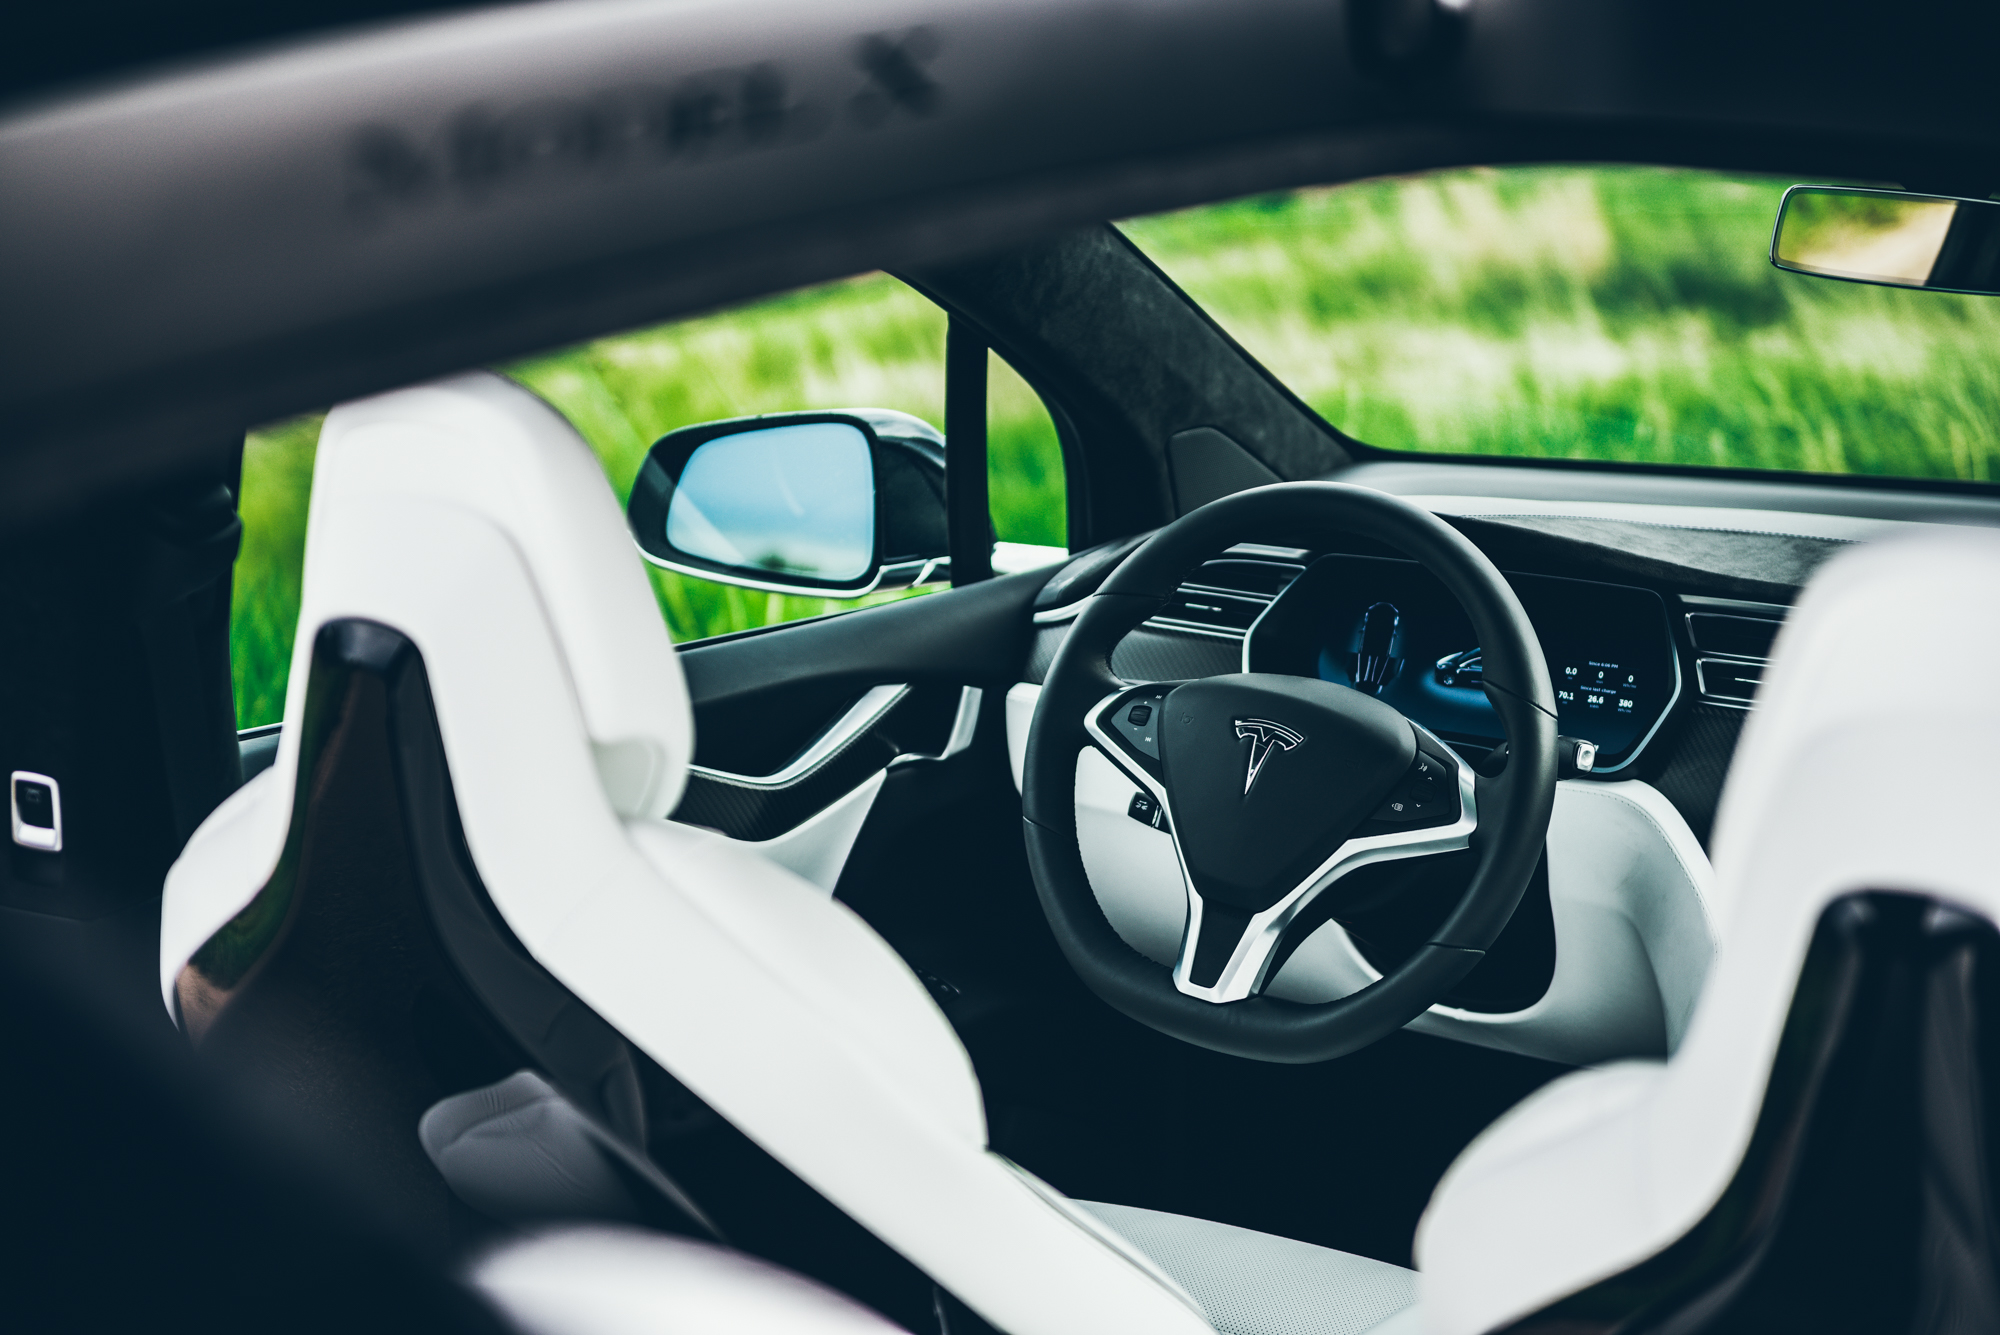 Tesla Model X Cockpit - Greg Mionske - Advertising and Editorial Photographer in Denver